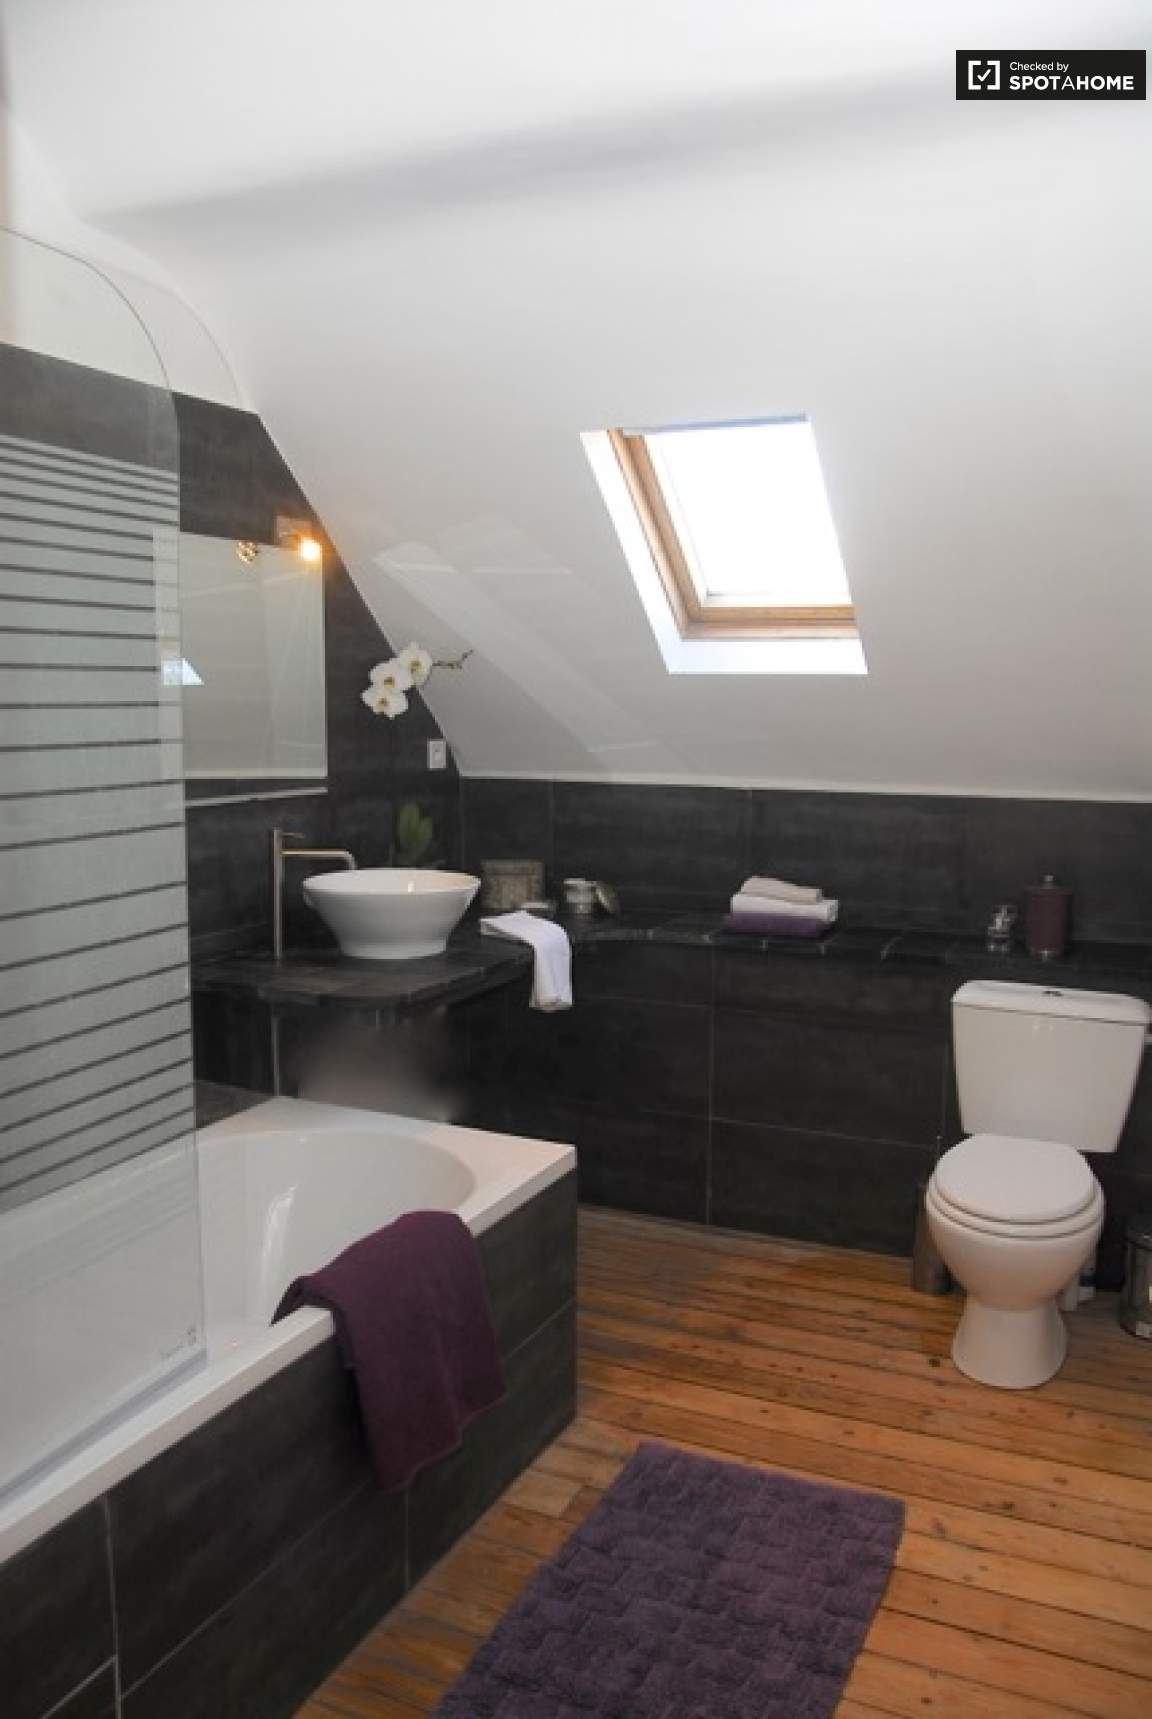 Bedroom 7 ensuite